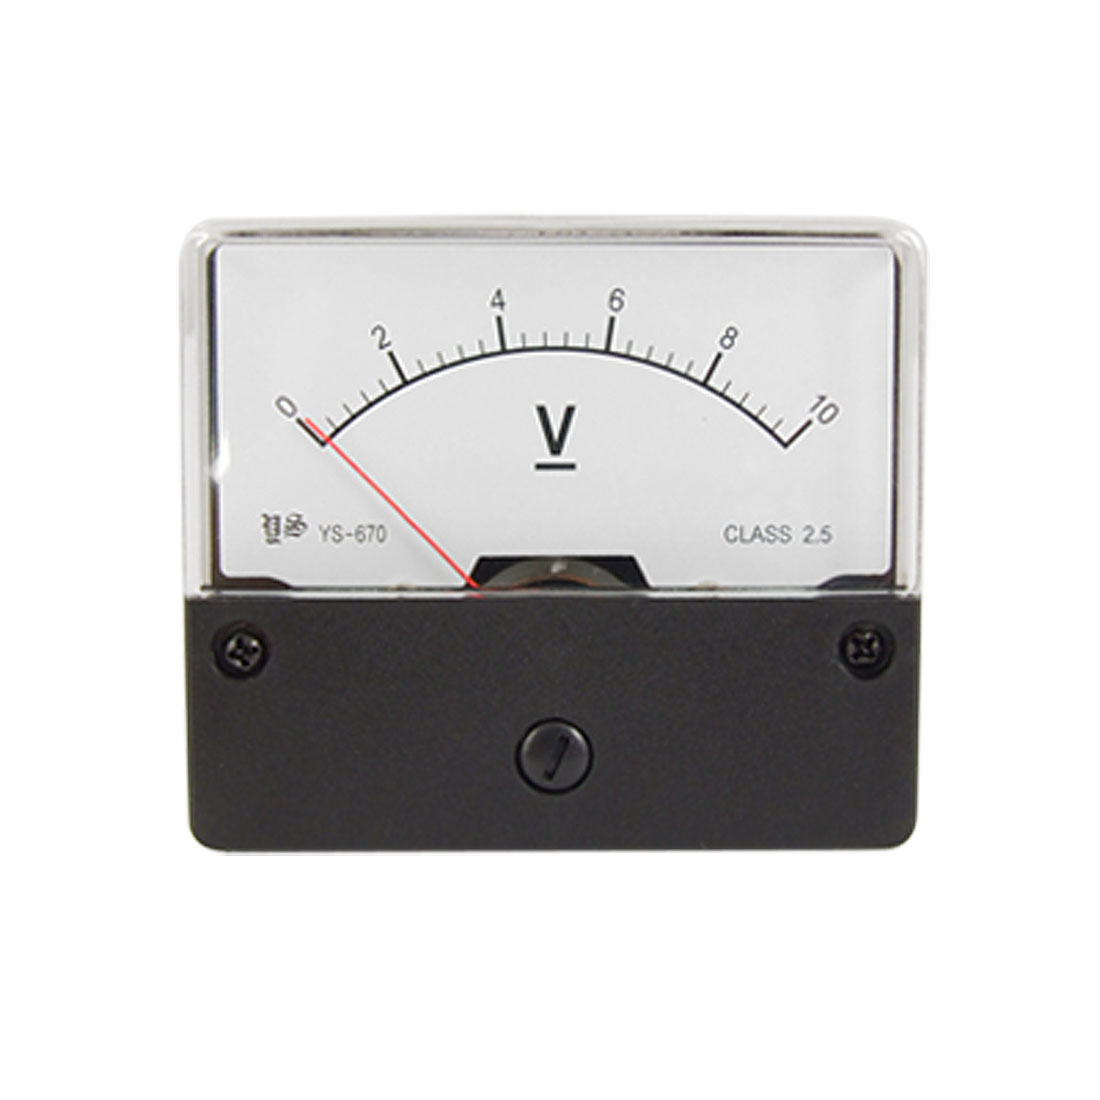 YS-670 DC 0-10V Panel Mounted Meter Analog Voltmeter Gauge